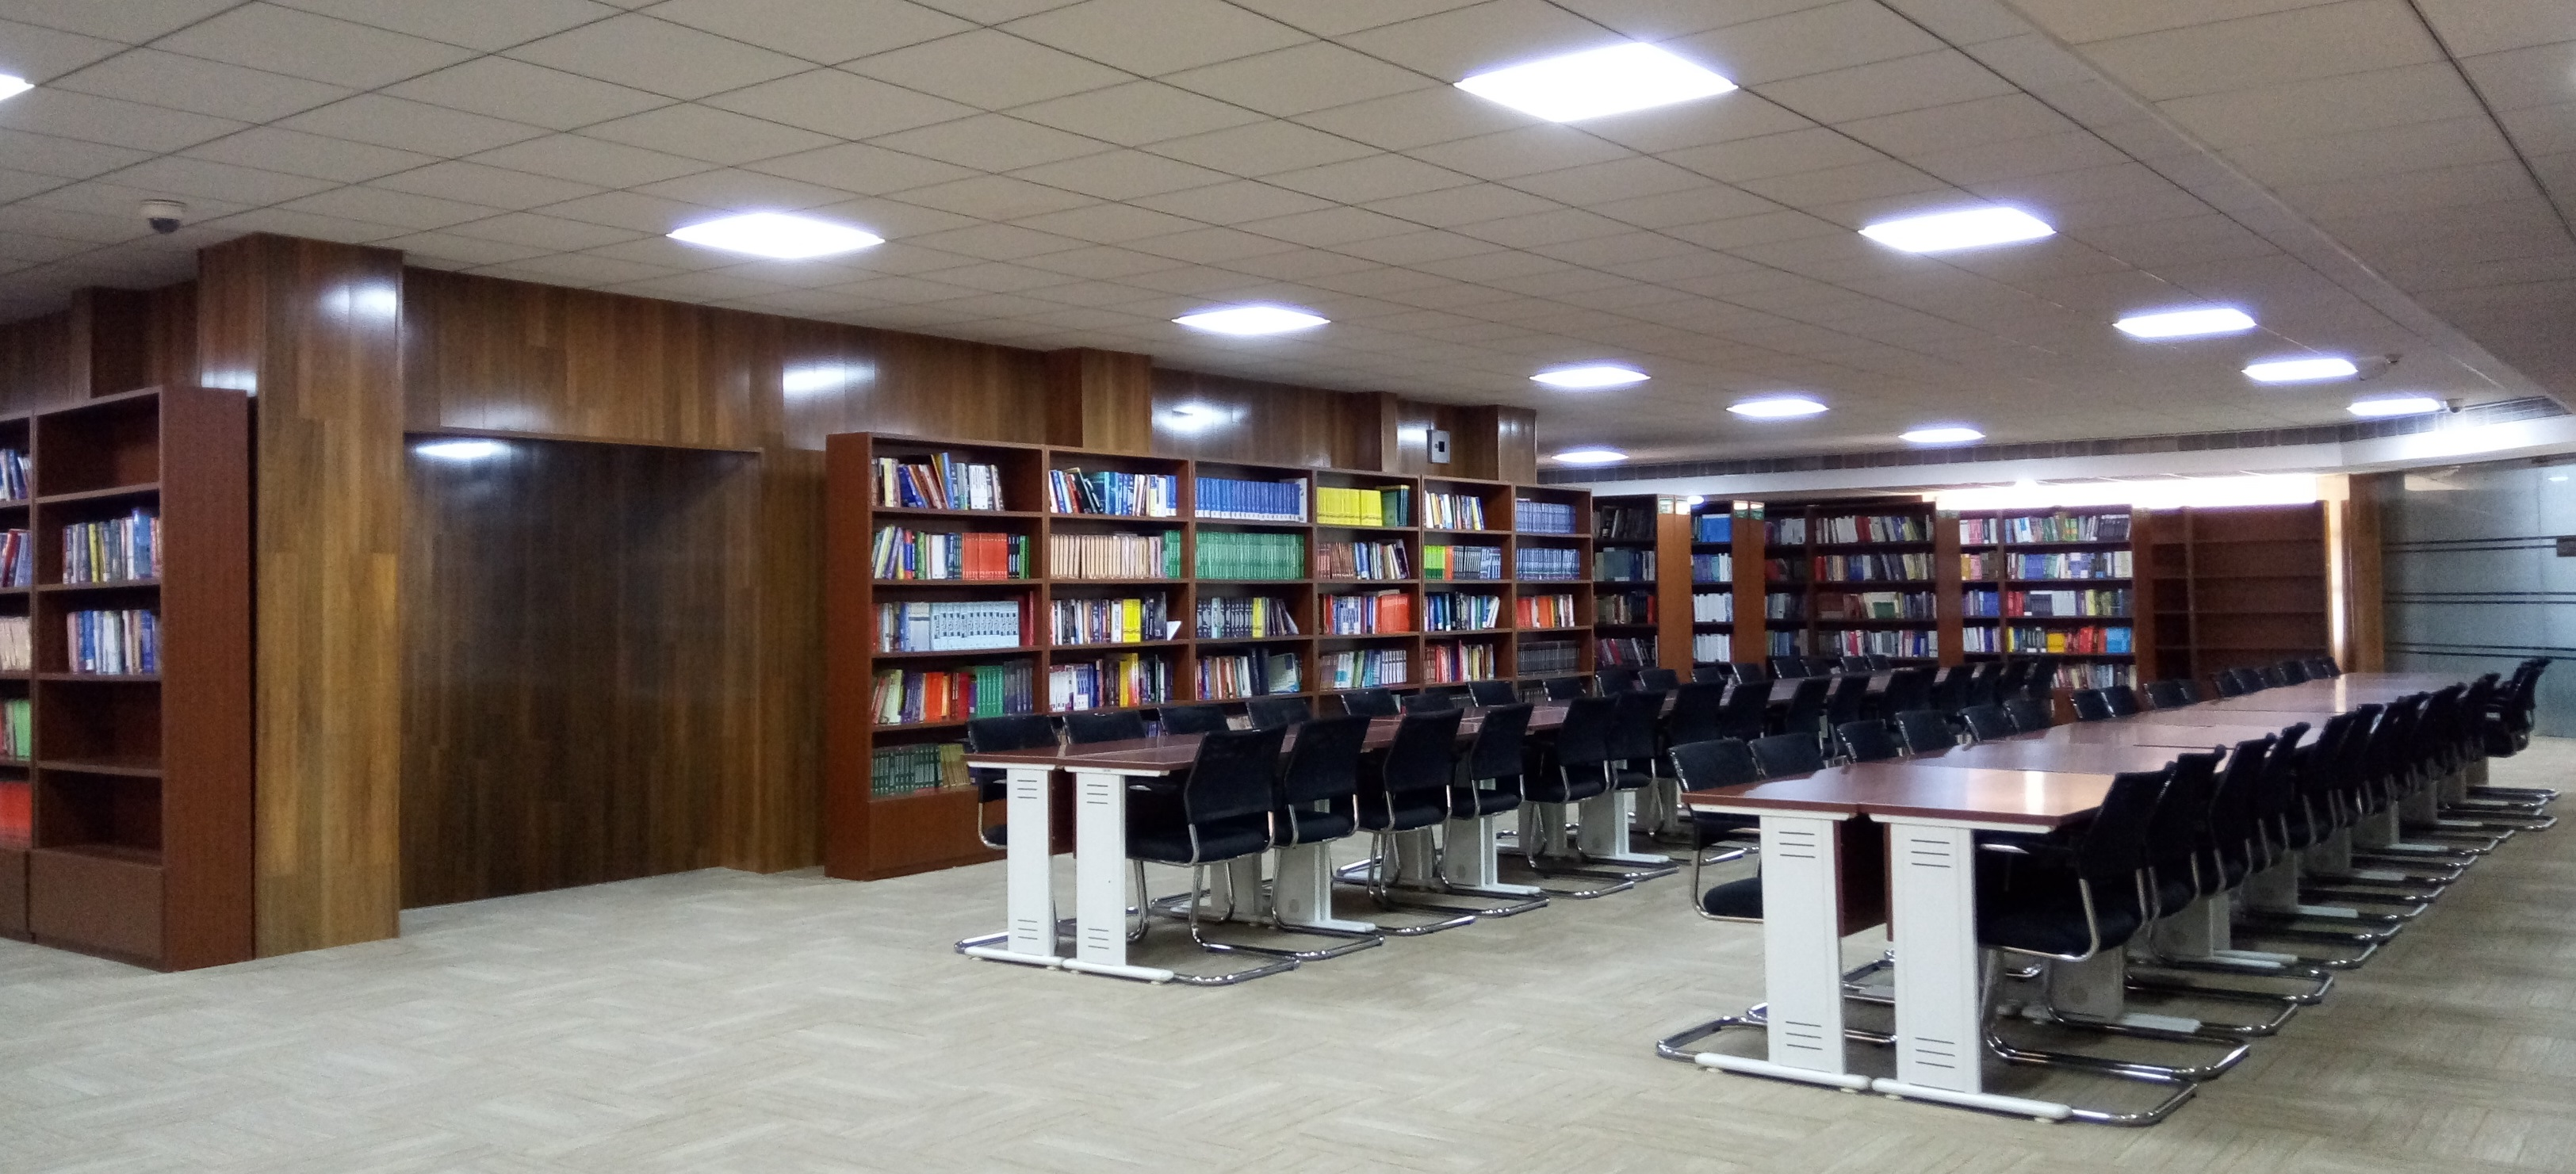 Central Library CIT Kokrajhar